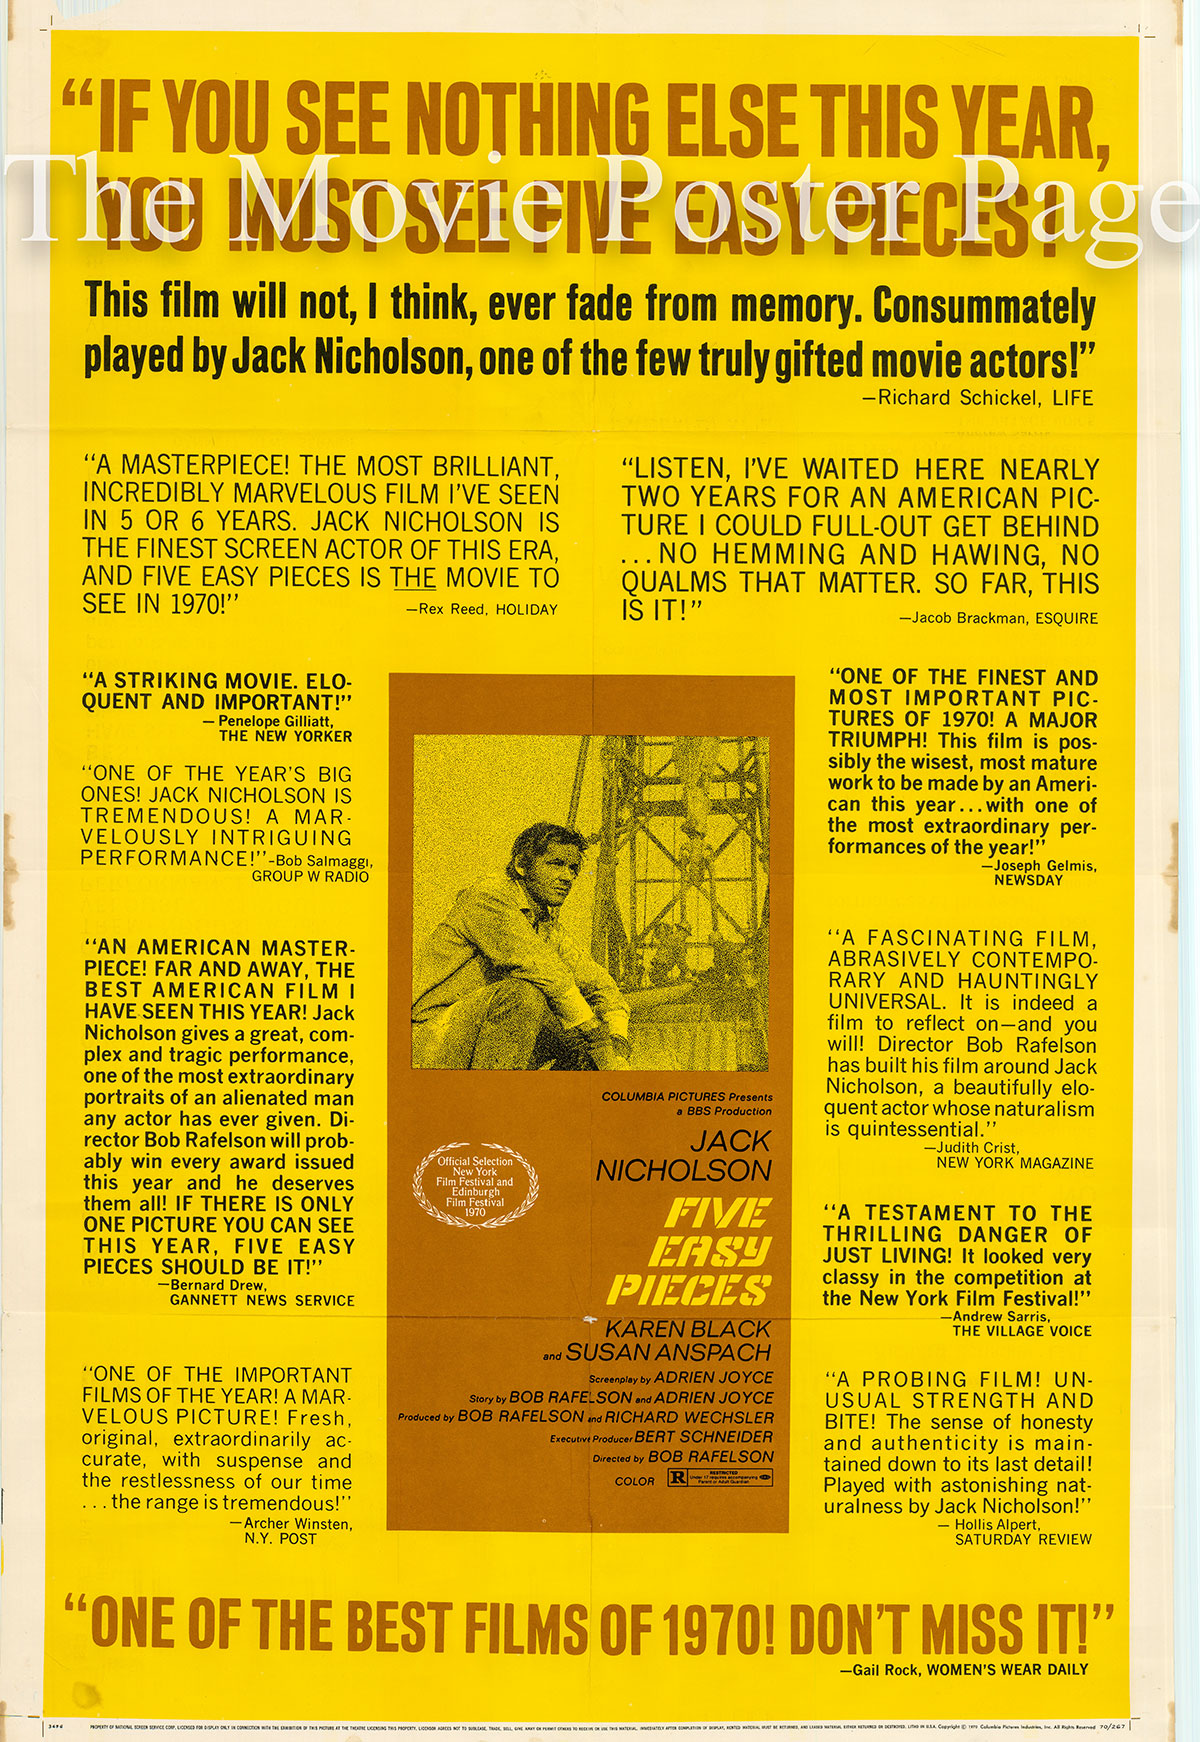 Pictured is a US reviews one-sheet poster for the 1970 Bob Rafelson film Five Easy Pieces starring Jack Nicholson.